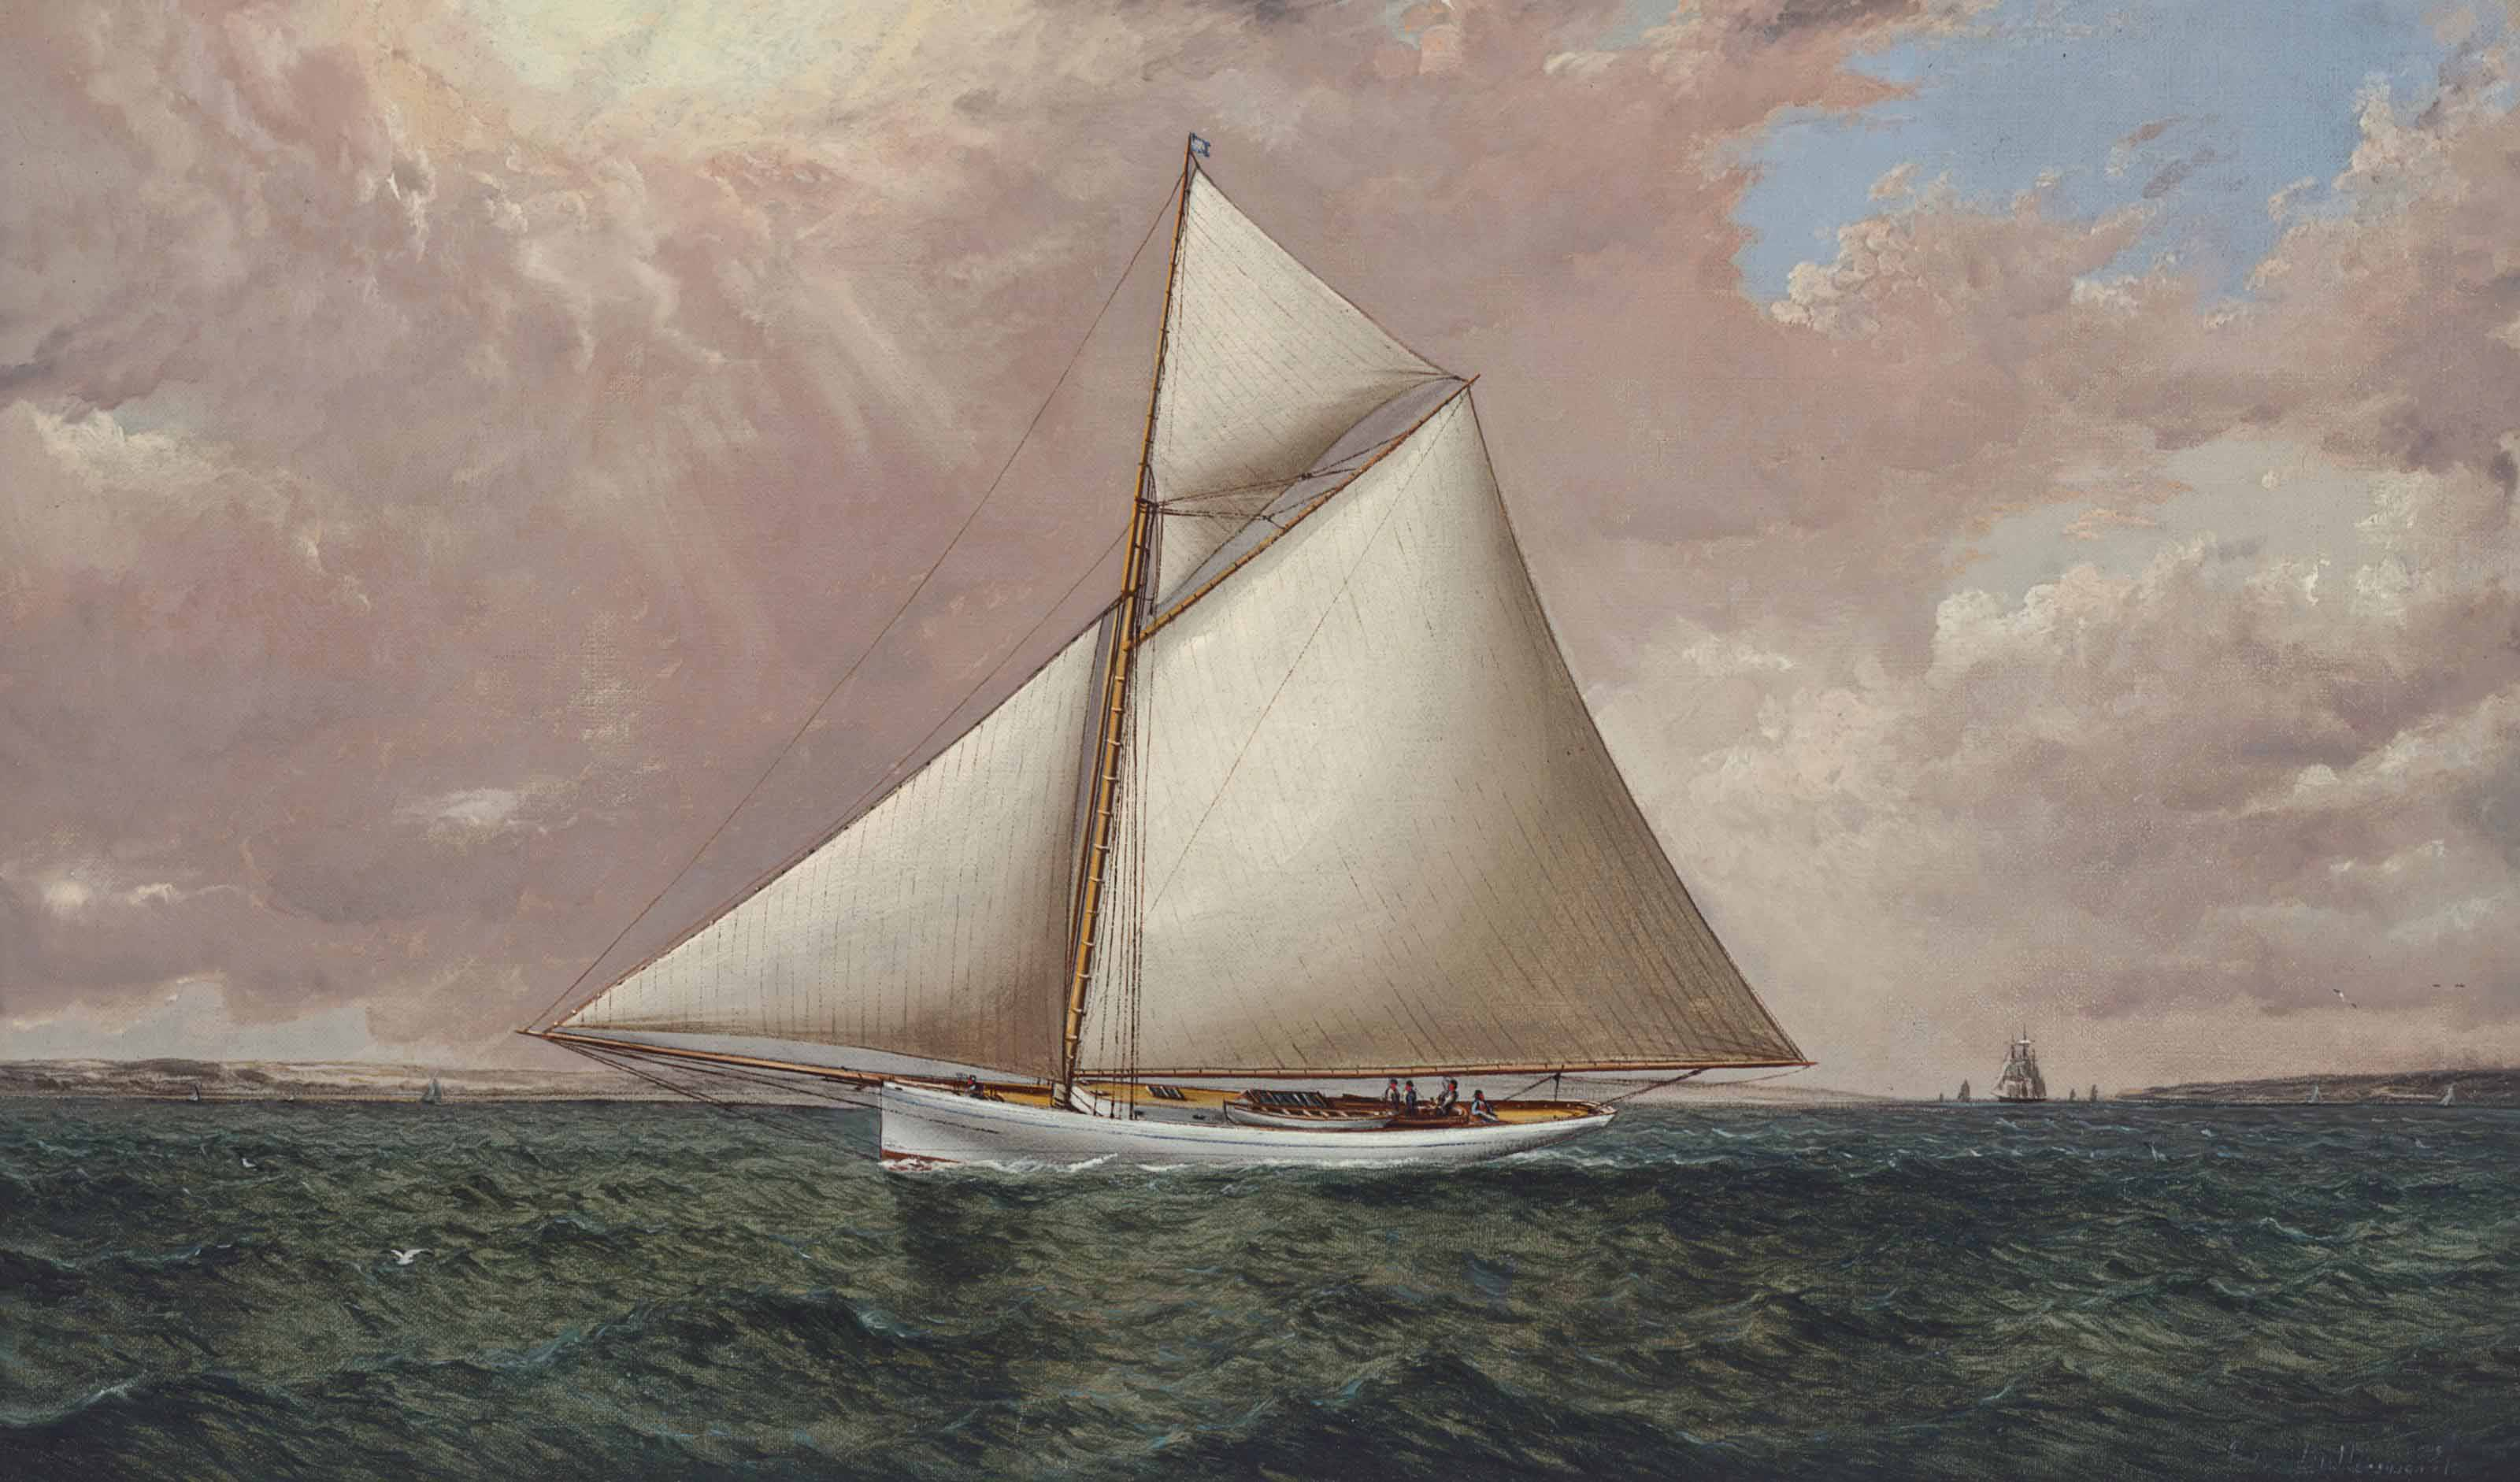 A Gaff Rigged Racing Cutter